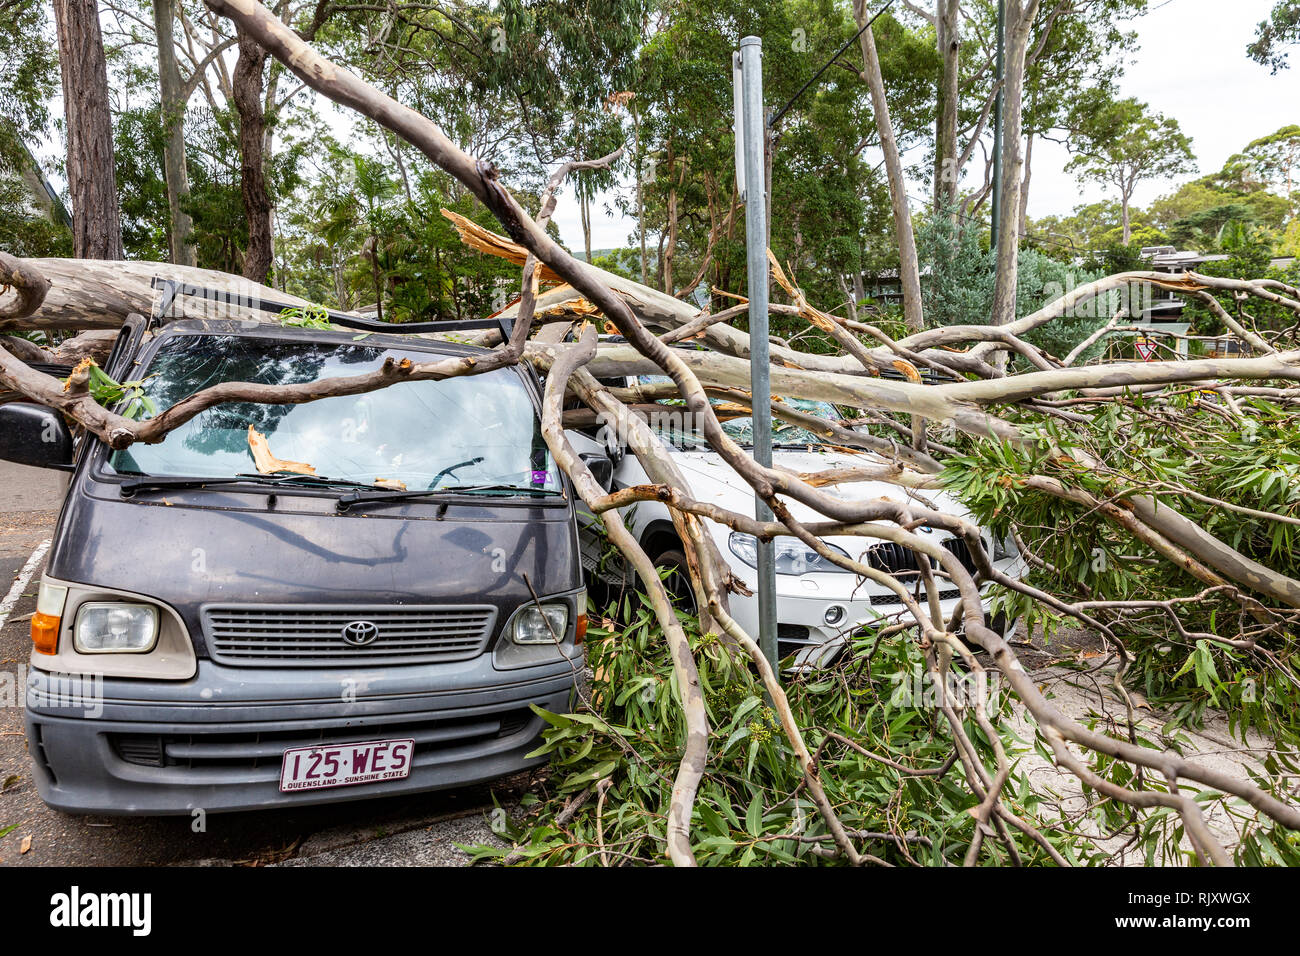 Tree falls and hits parked car on the roof,Sydney,Australia - Stock Image